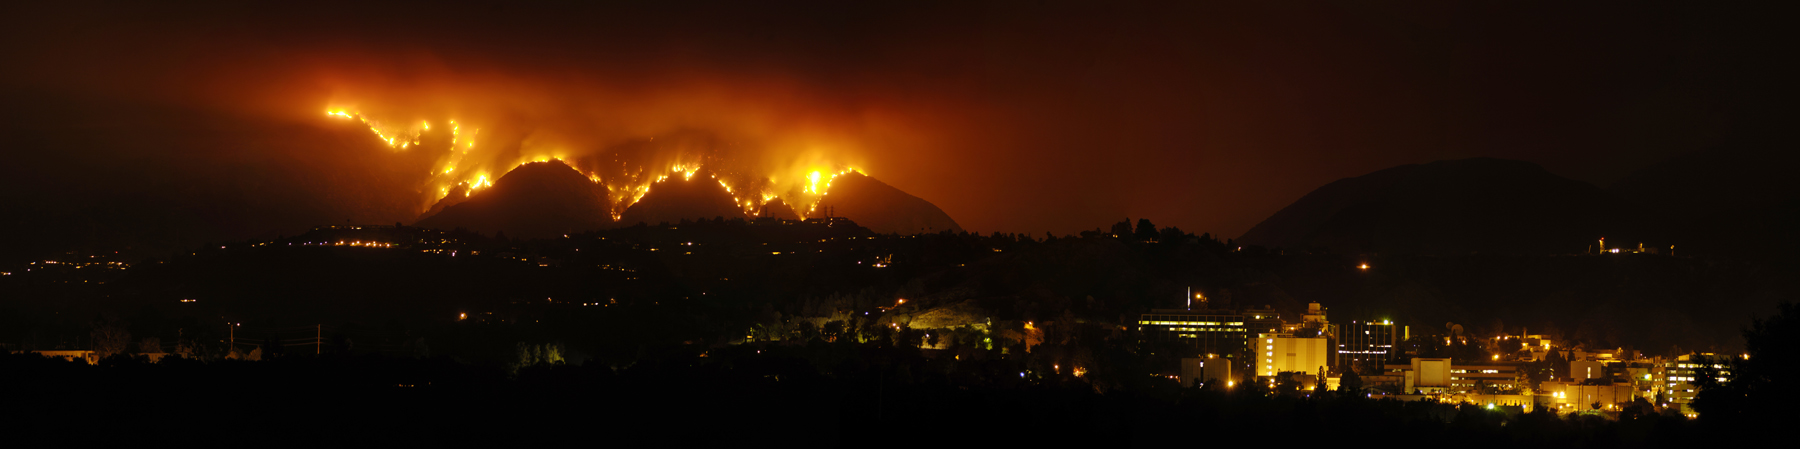 :: STATION FIRE 2009 ::